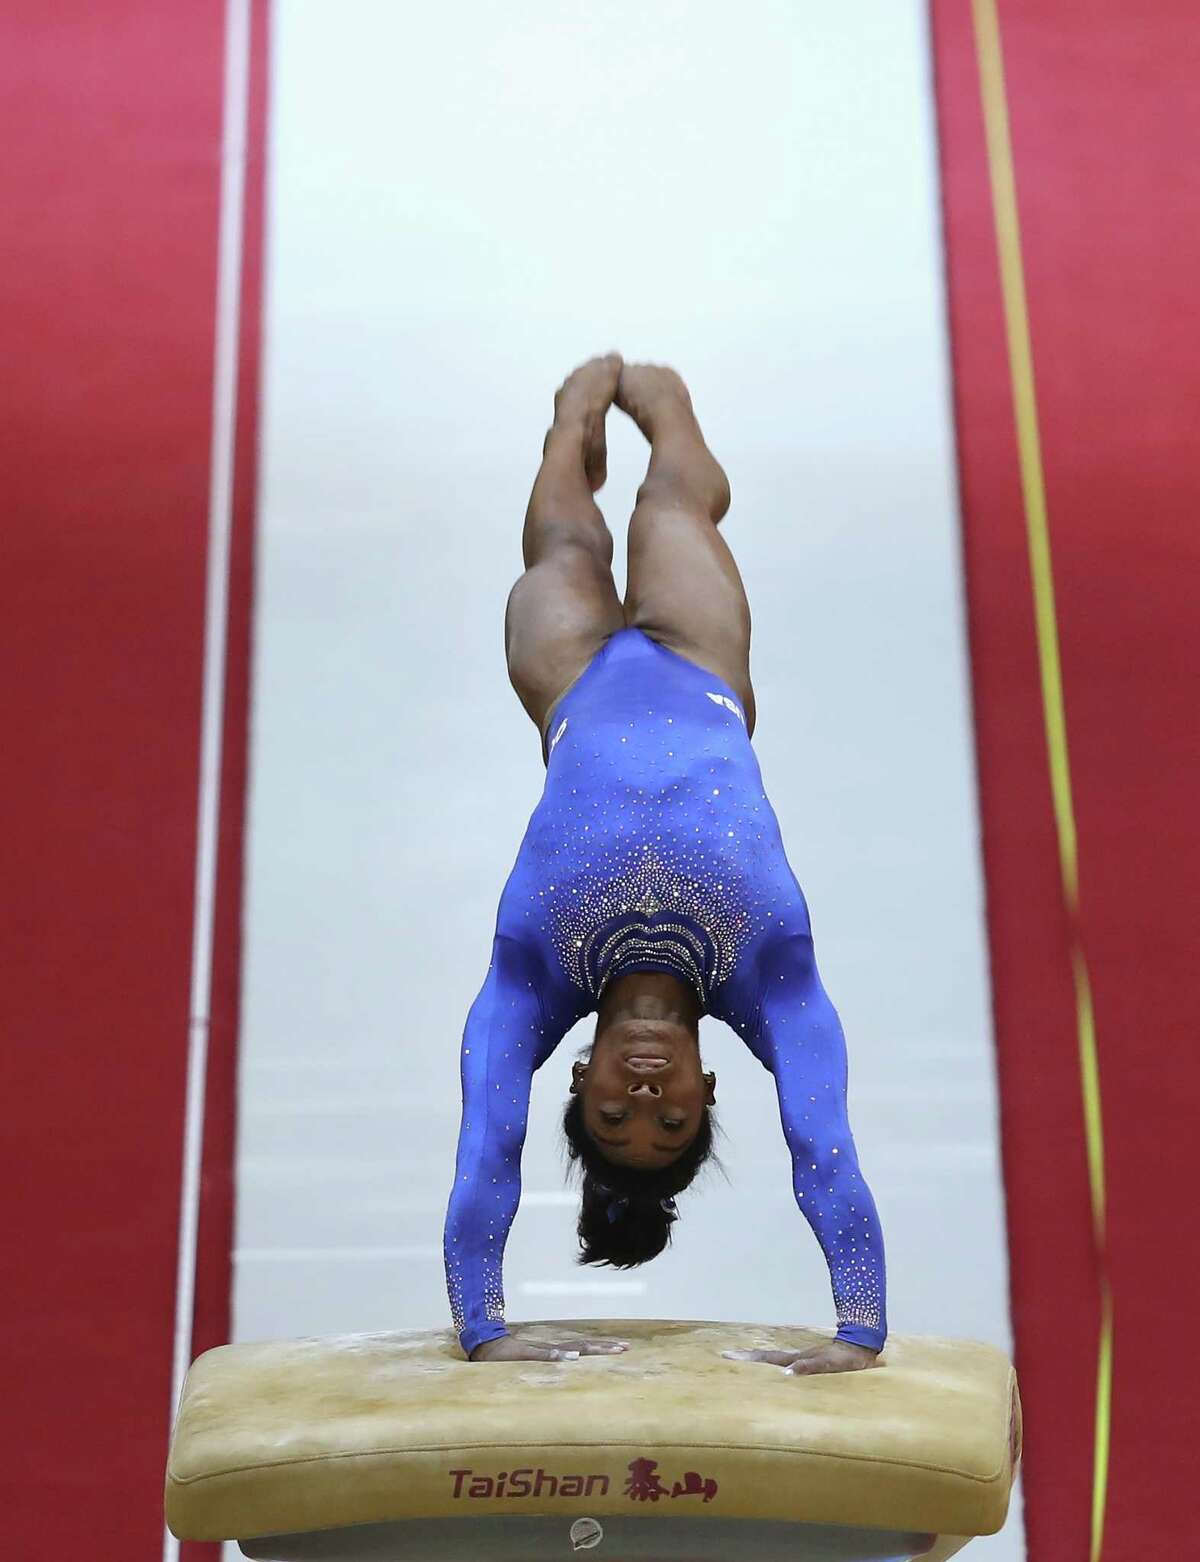 DOHA, QATAR - OCTOBER 27: Simone Biles of USA competes in the Women's Vault Qualification during day three of the 2018 FIG Artistic Gymnastics Championships at Aspire Dome on October 27, 2018 in Doha, Qatar.